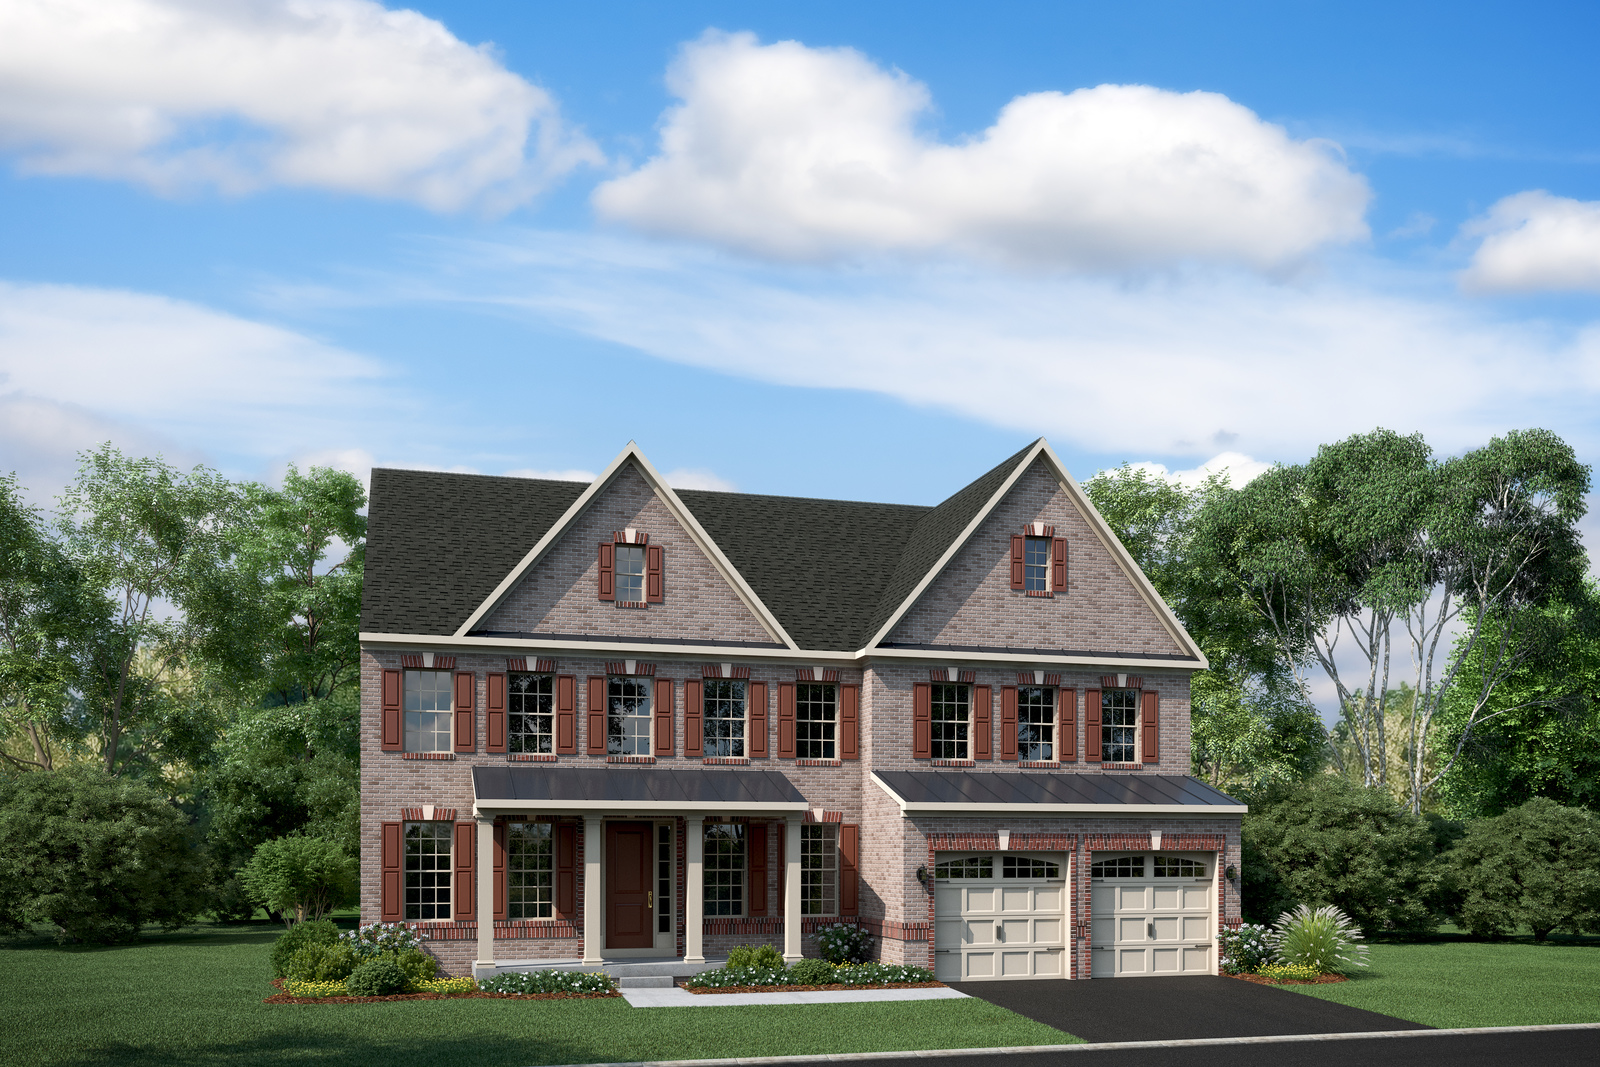 Choose either Craftsman-style or brick-front elevations at Maple Lawn South.